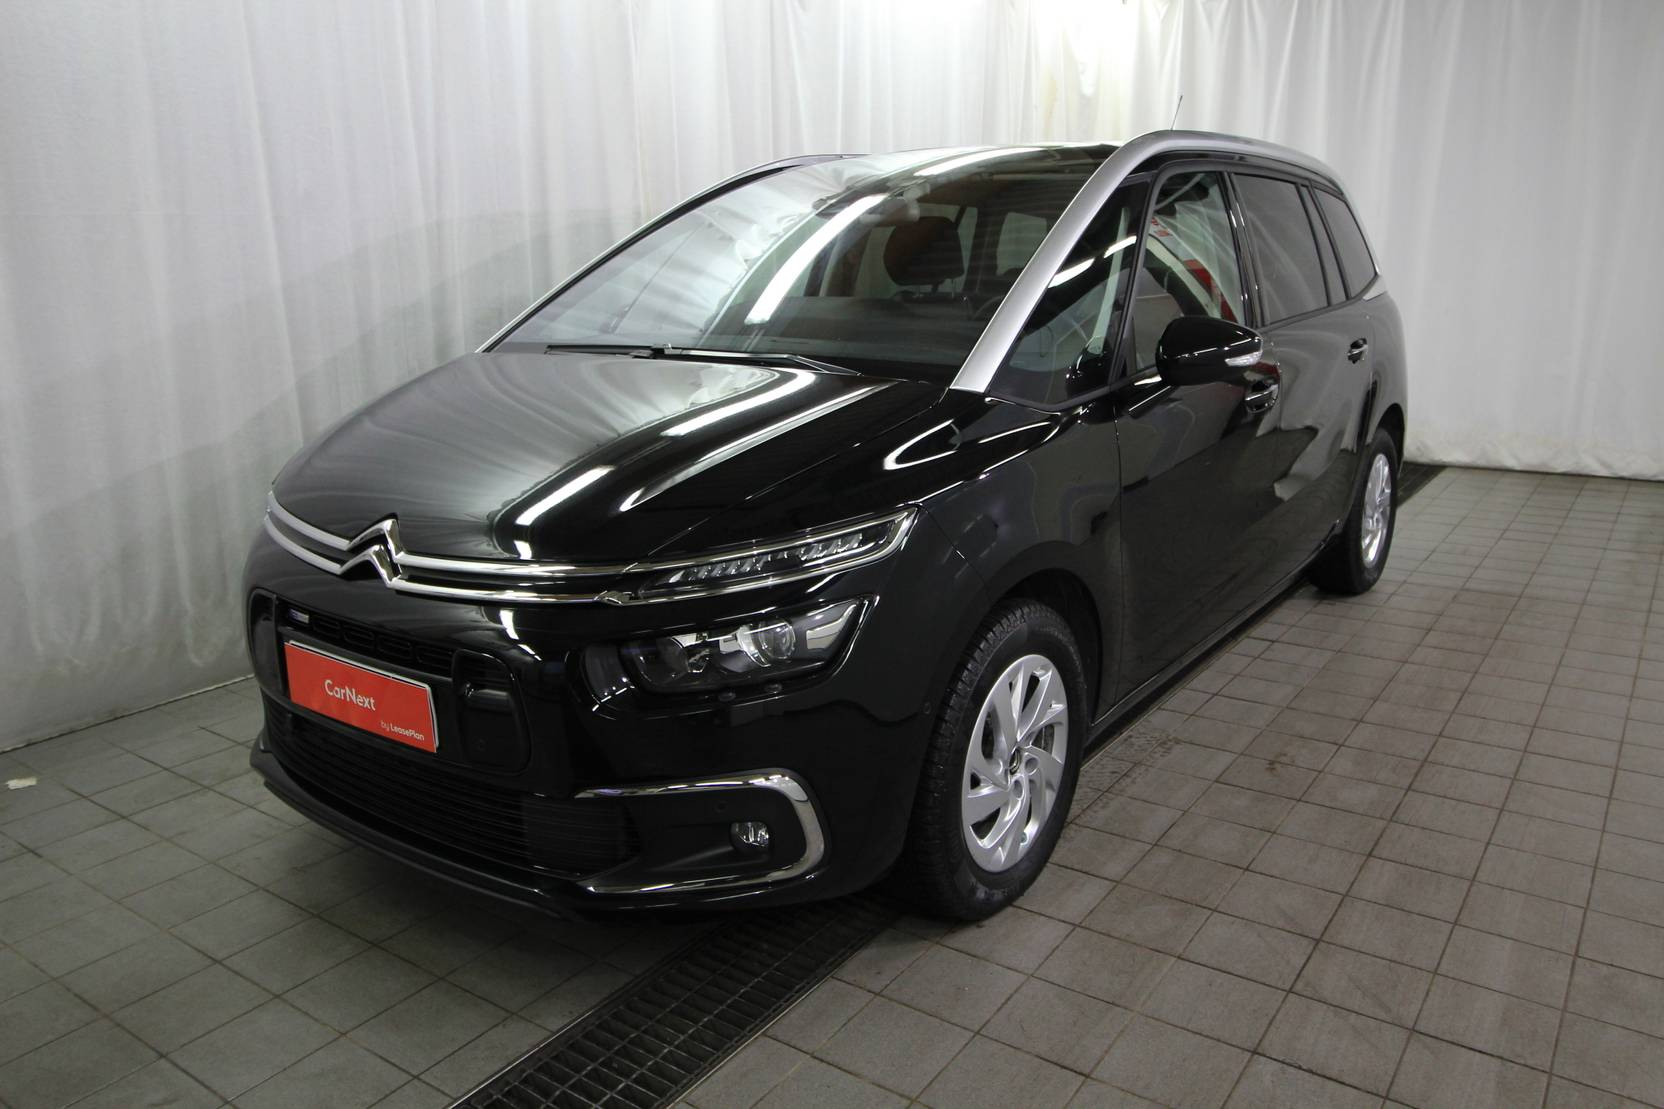 Citroën Grand C4 Picasso Puretech 130 Exclusive Automaatti detail1